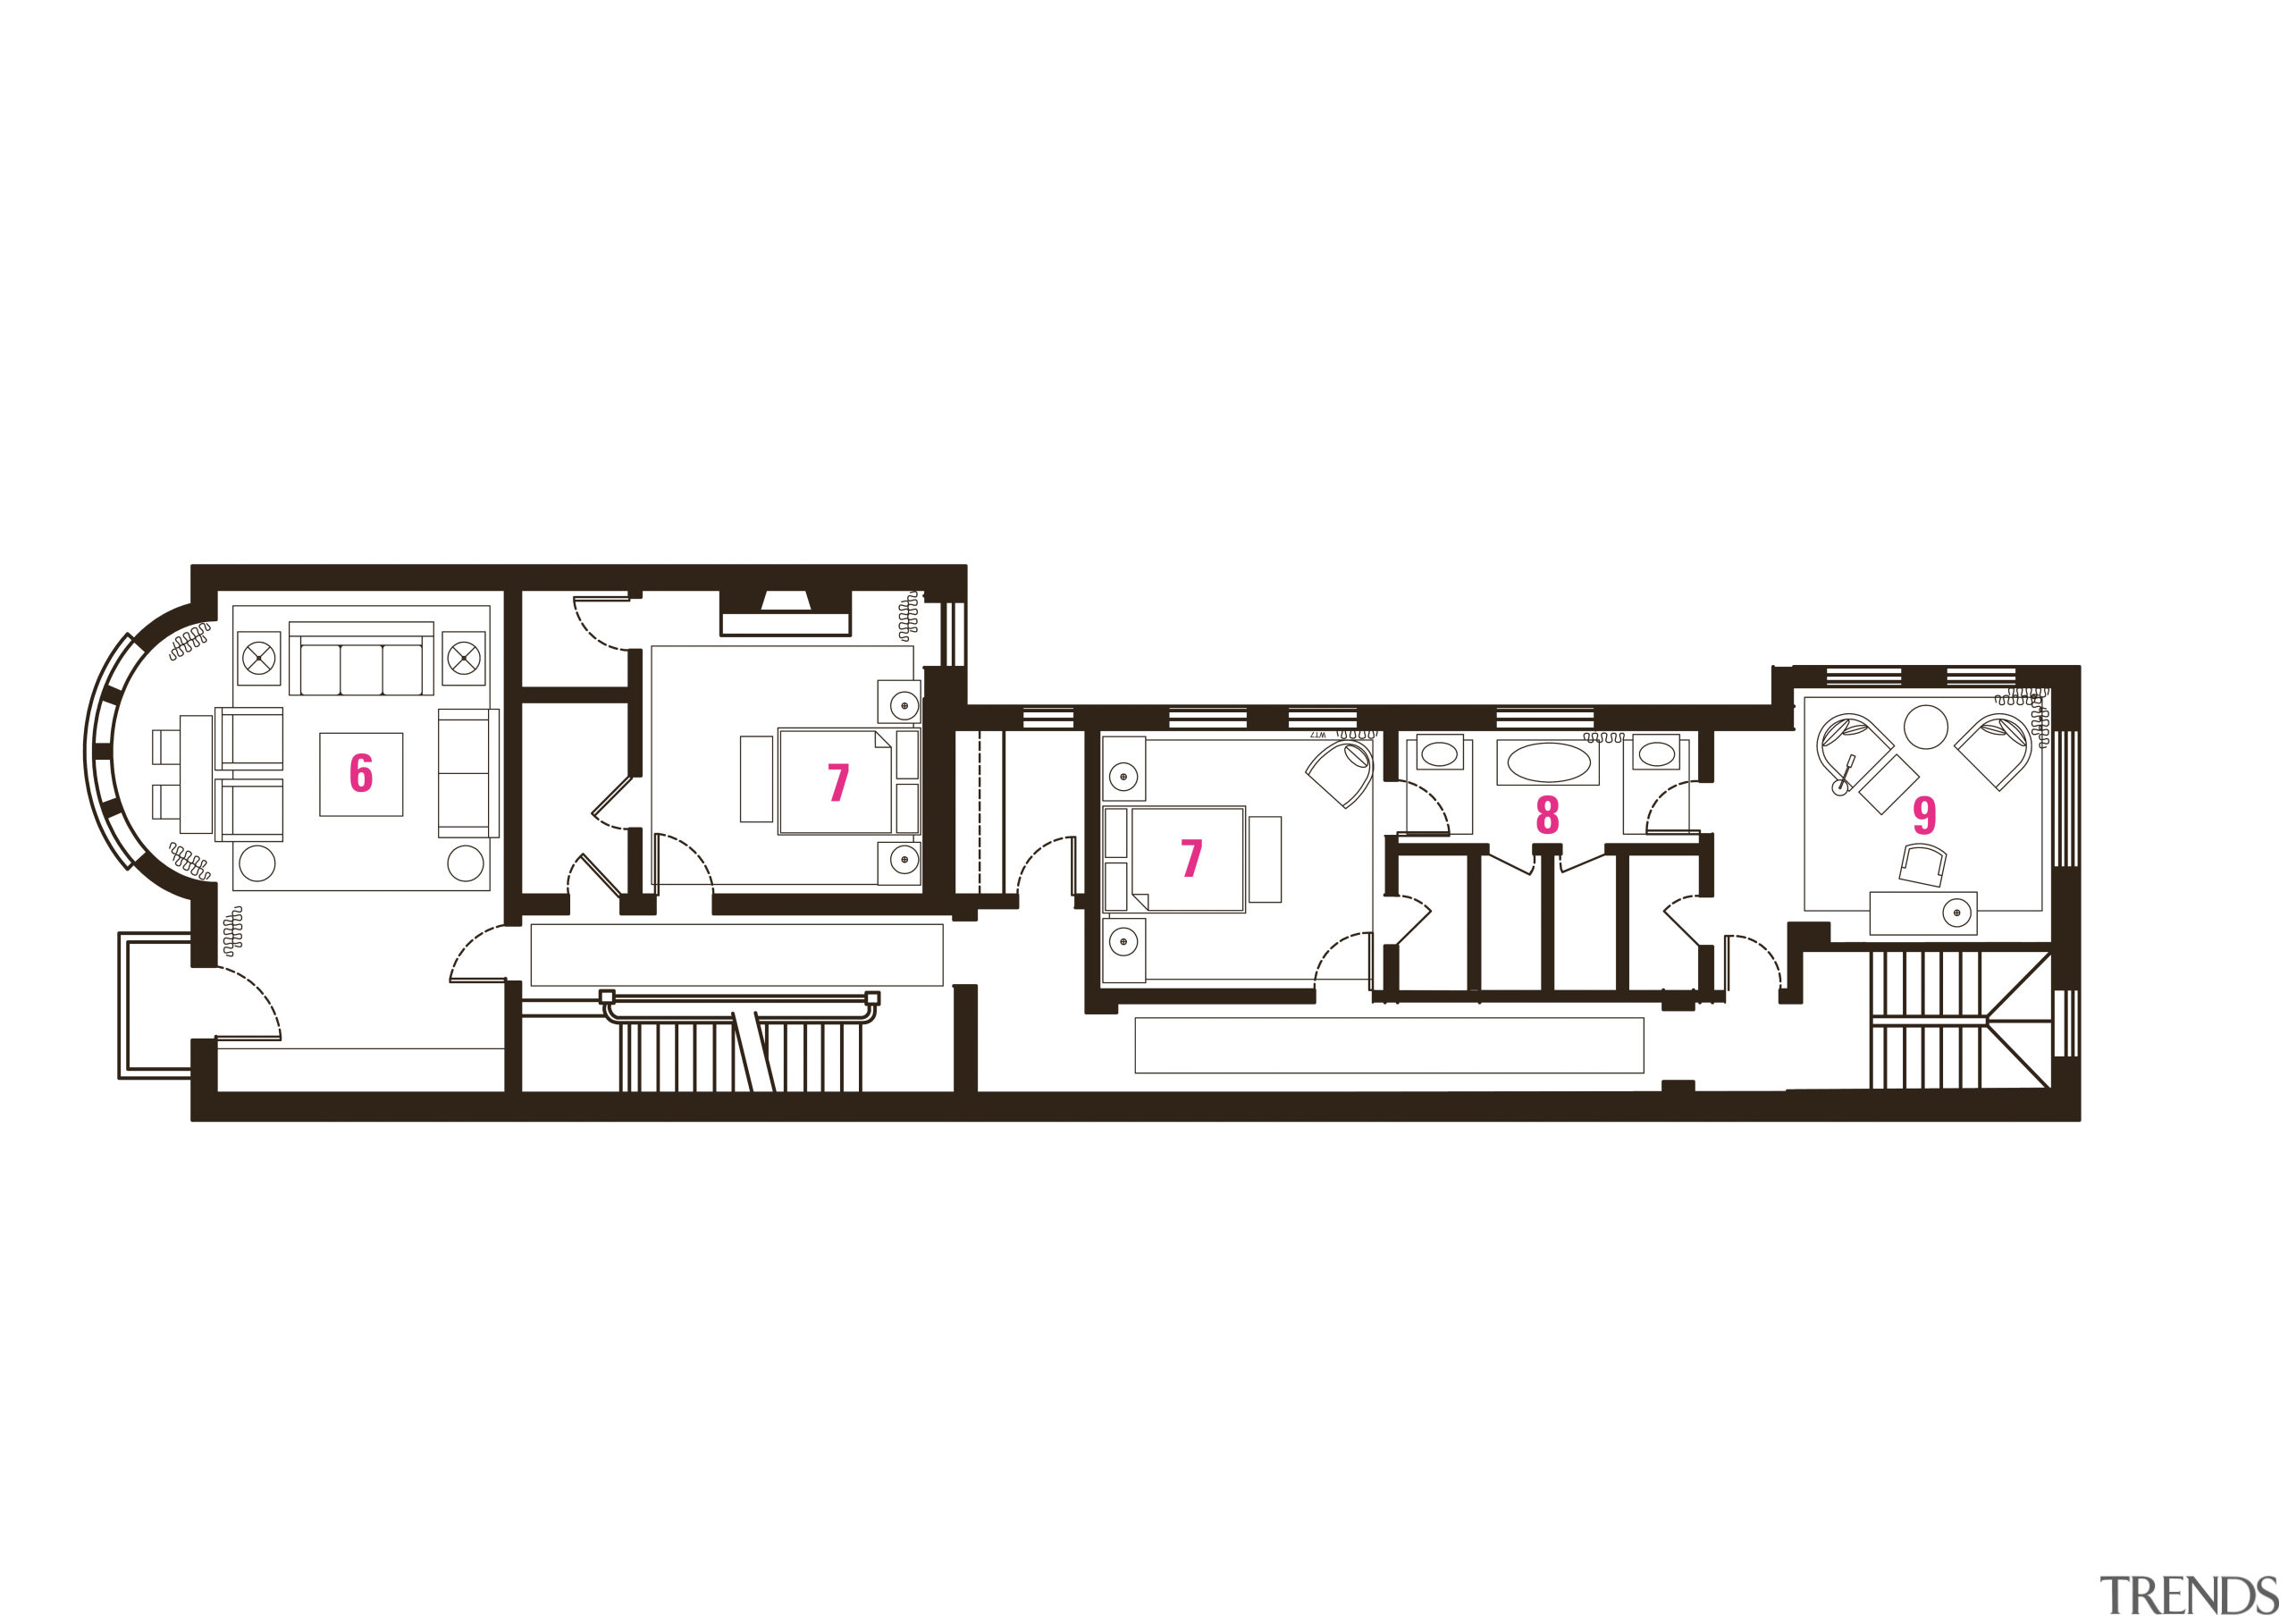 Architectual legend for plans of historical houe. - area, design, floor plan, line, product, product design, white